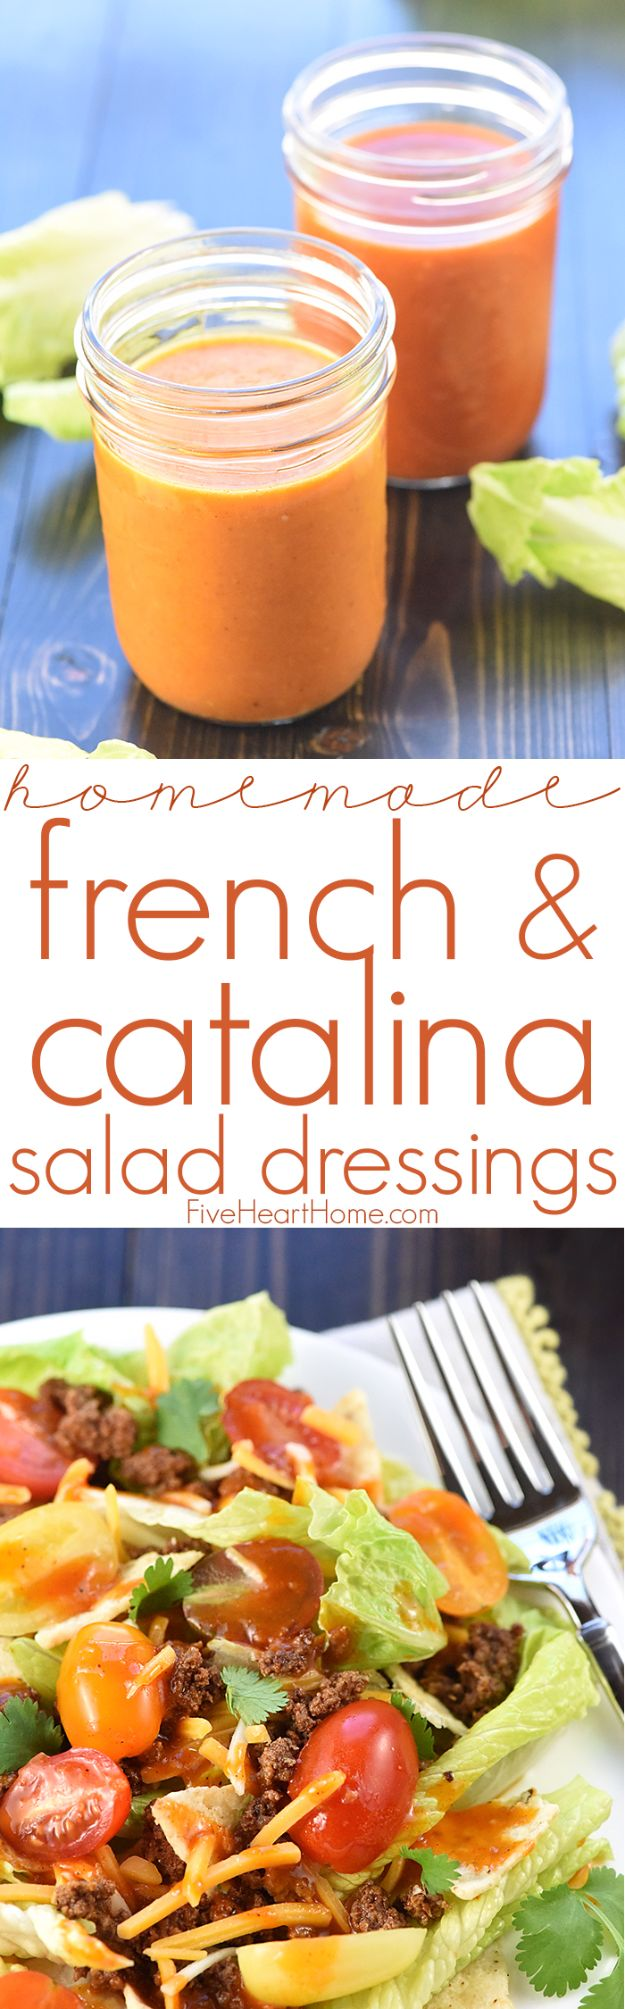 Salad Dressing Recipes - Homemade French & Catalina Salad Dressing - Healthy, Low Calorie and Easy Recipes for Creamy Homeade Dressings - How To Make Vinaigrette, Mango, Greek, Paleo, Balsamic, Ranch, and Italian Copycat Dressings http://diyjoy.com/best-salad-dressing-recipes